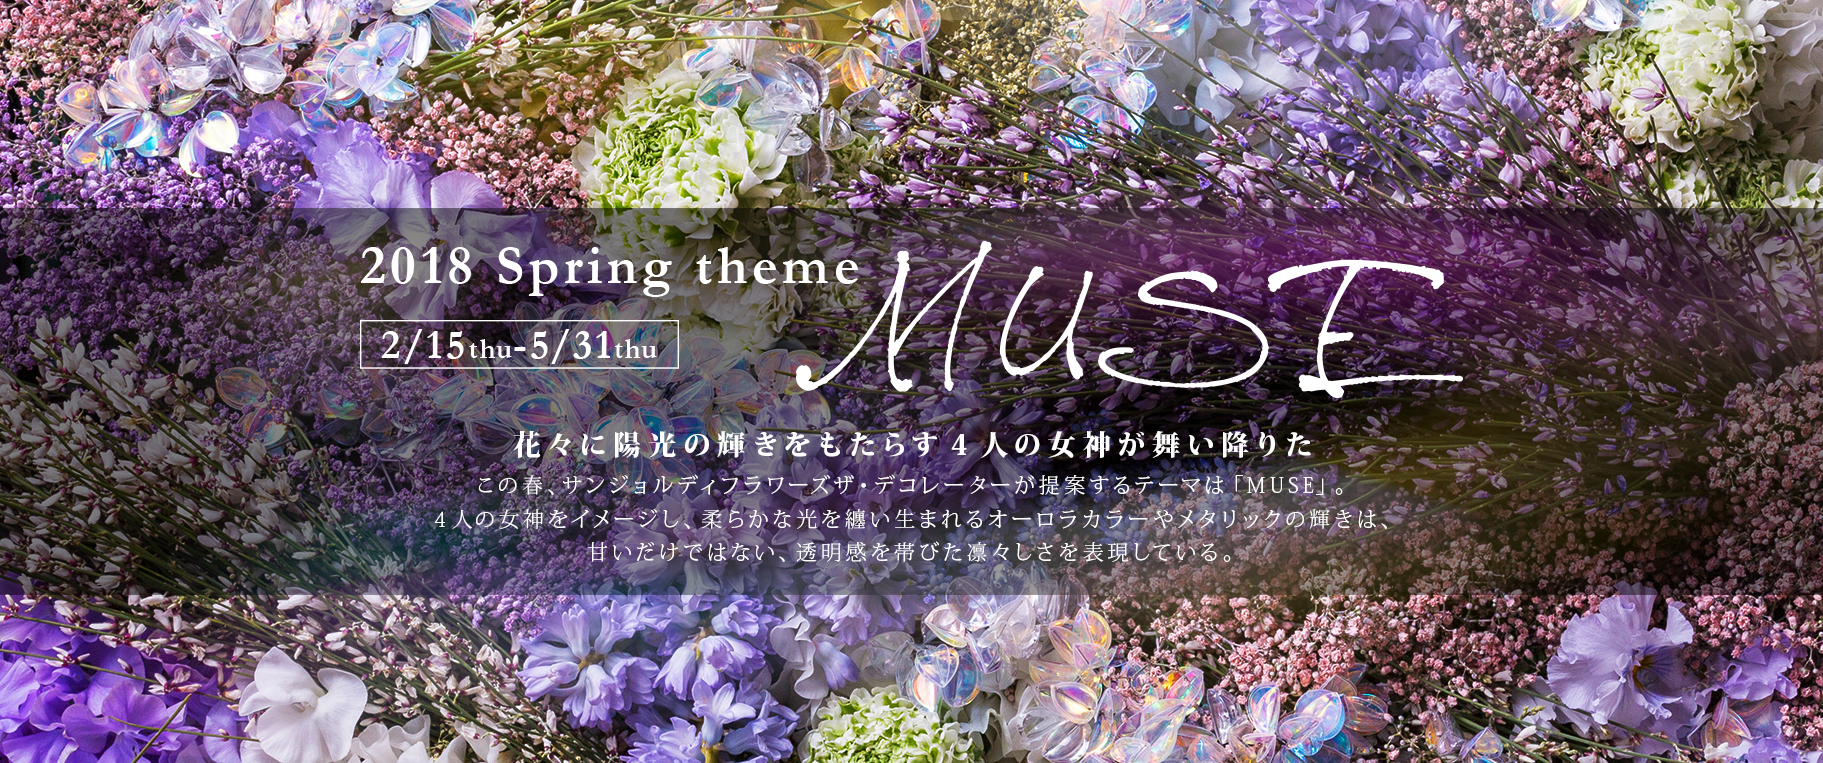 Sprinf theme 2018 「MUSE」